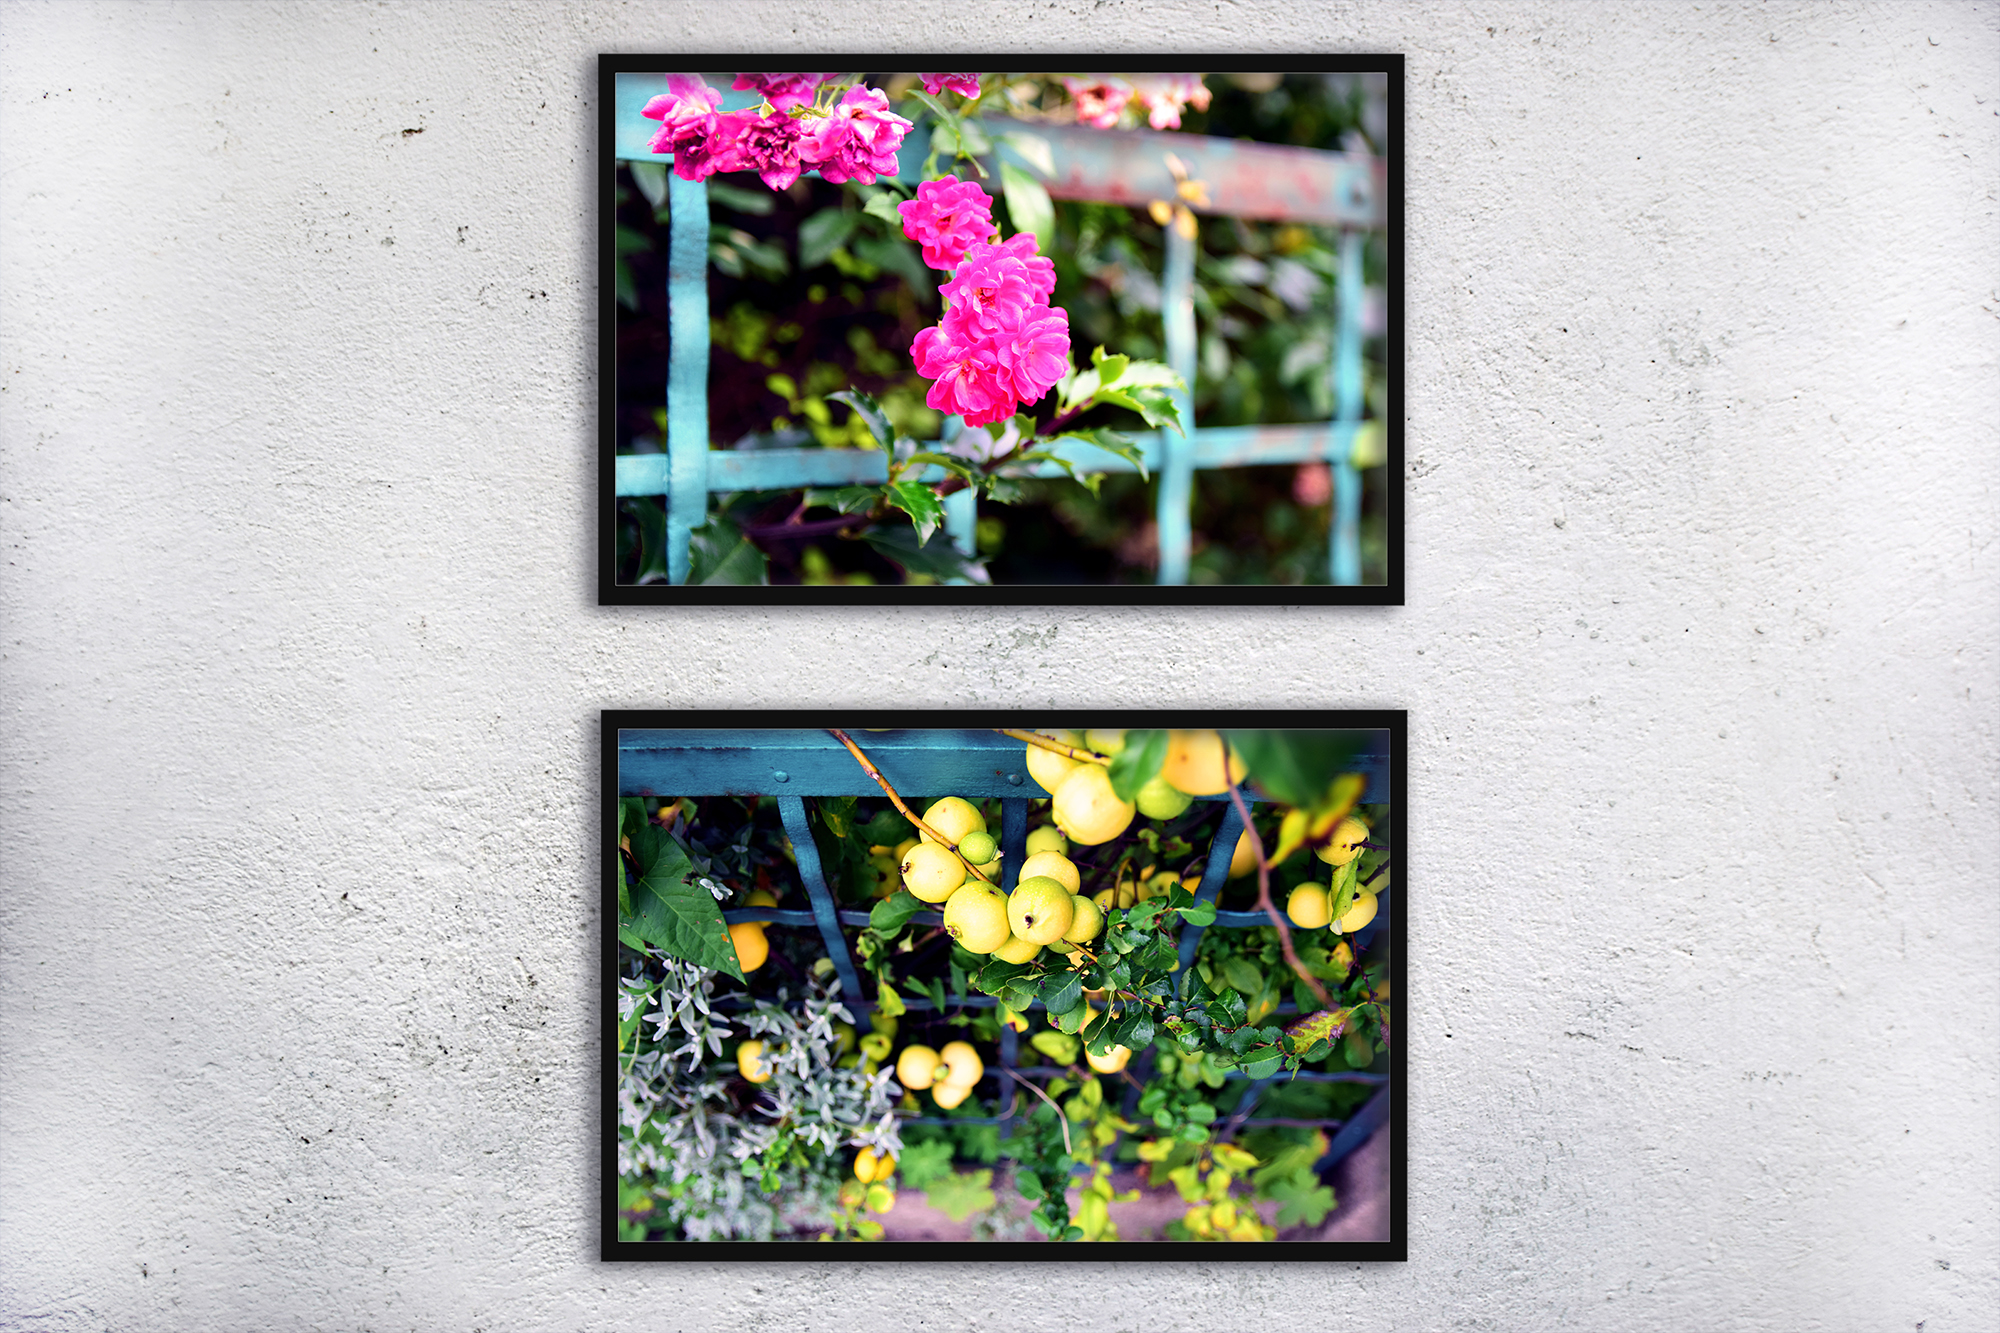 Nature photo, floral photo, flower photo, summer example image 3